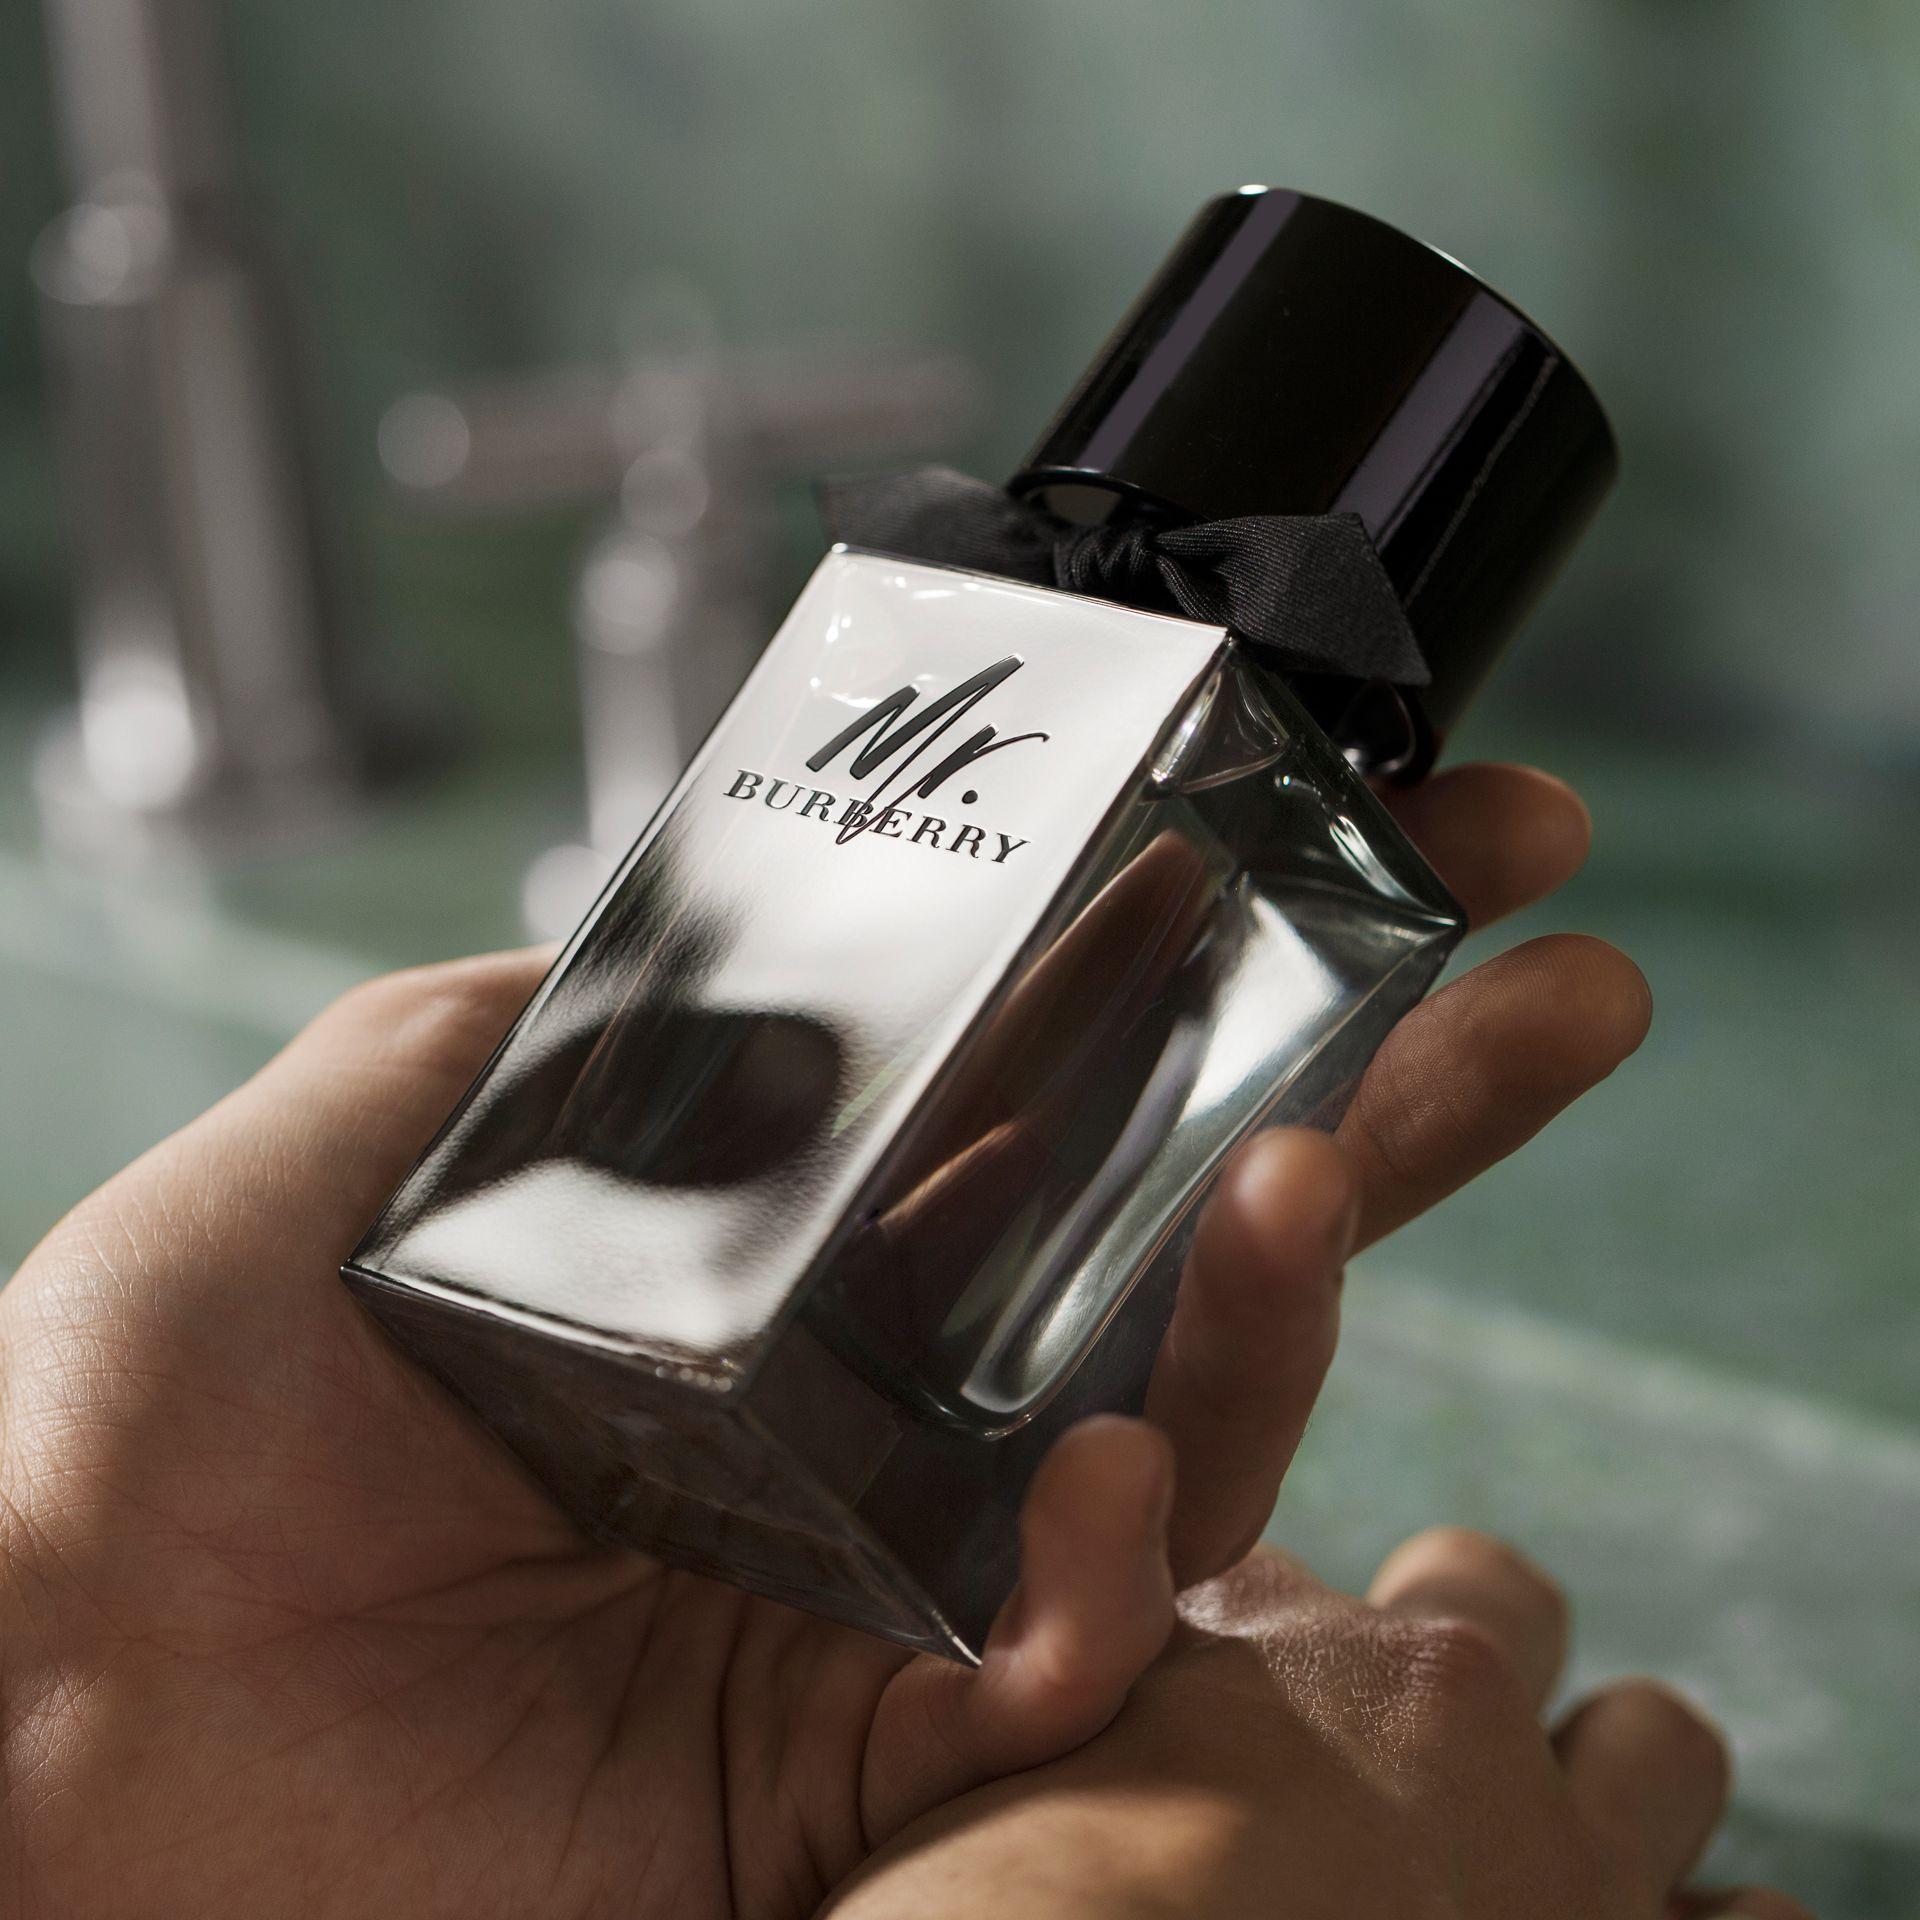 Mr. Burberry Eau de Toilette 100 ml (100ml) | Burberry - Galerie-Bild 1